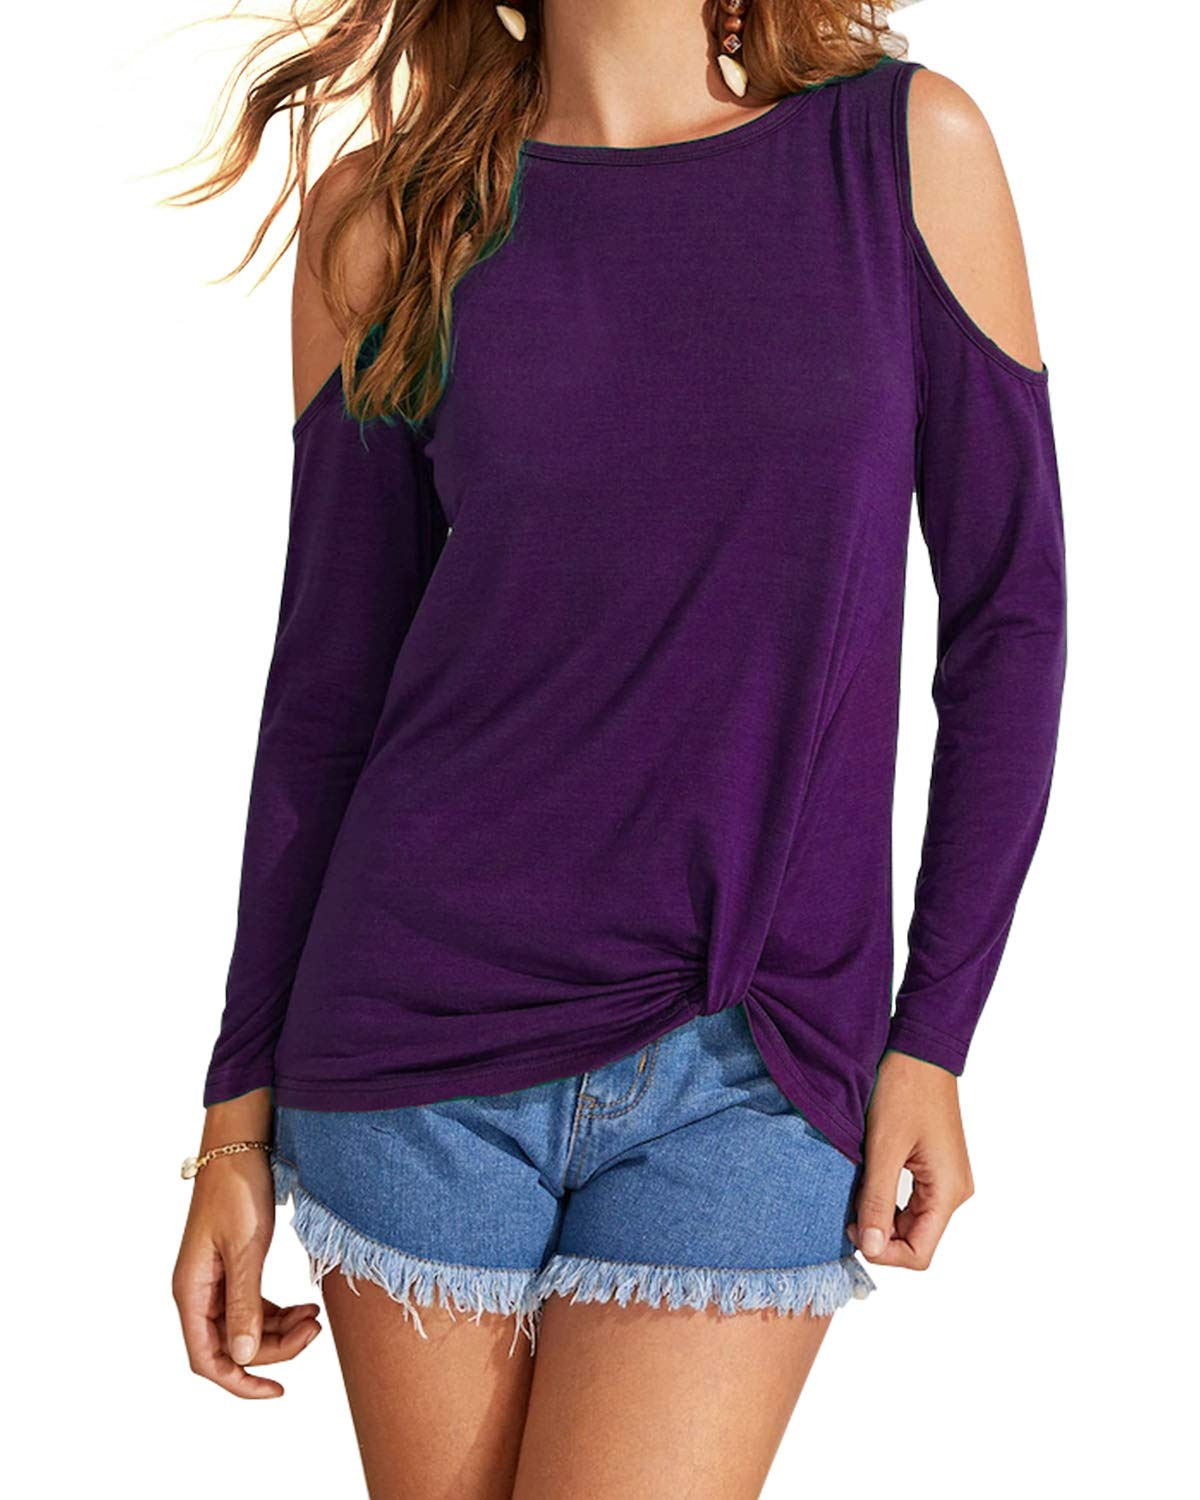 Eanklosco Womens Long Sleeve Cold Shoulder Cut Out T Shirts Casual Knot Tunic Tops (Purple, M)